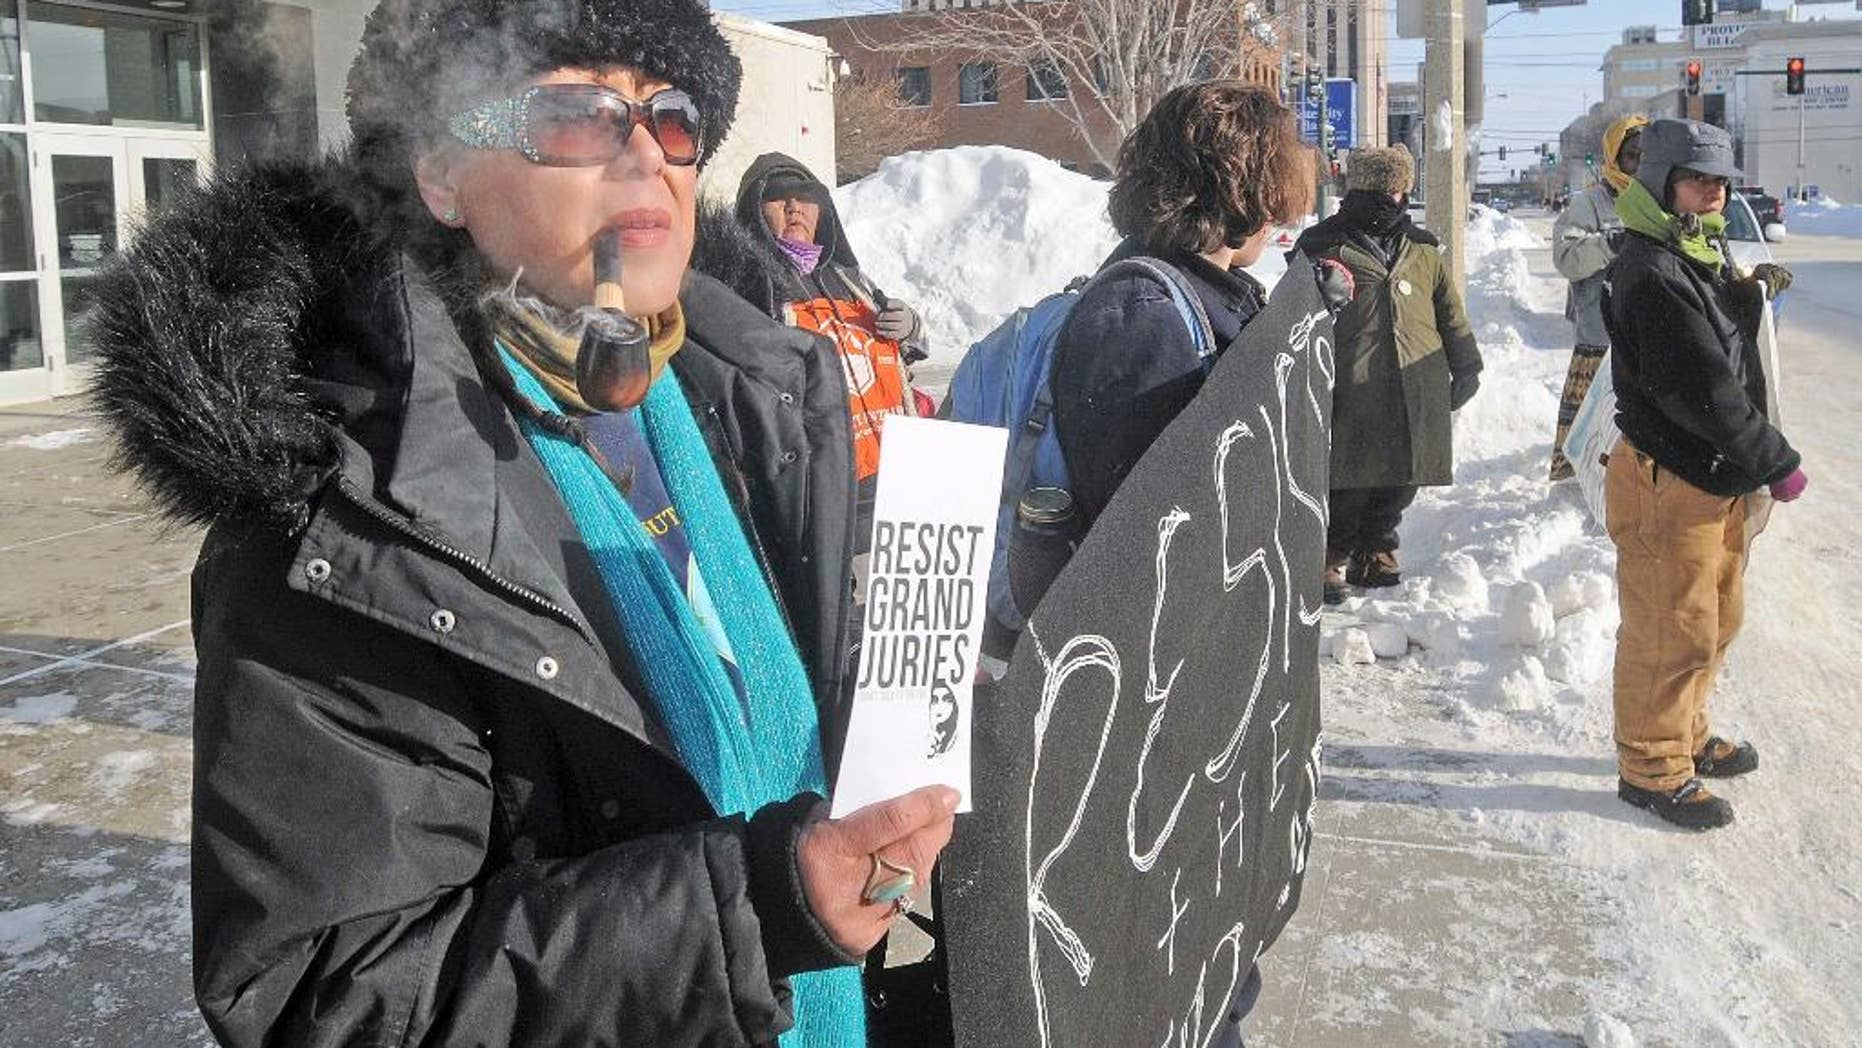 Vivian Billy, left, was outside the Federal Building in downtown Bismarck on Wednesday, Jan. 4, 2017, handing out resist grand jury pamphlets while helping hold a banner with other protesters against the Dakota Access Pipeline. (Tom Stromme/The Bismarck Tribune via AP)